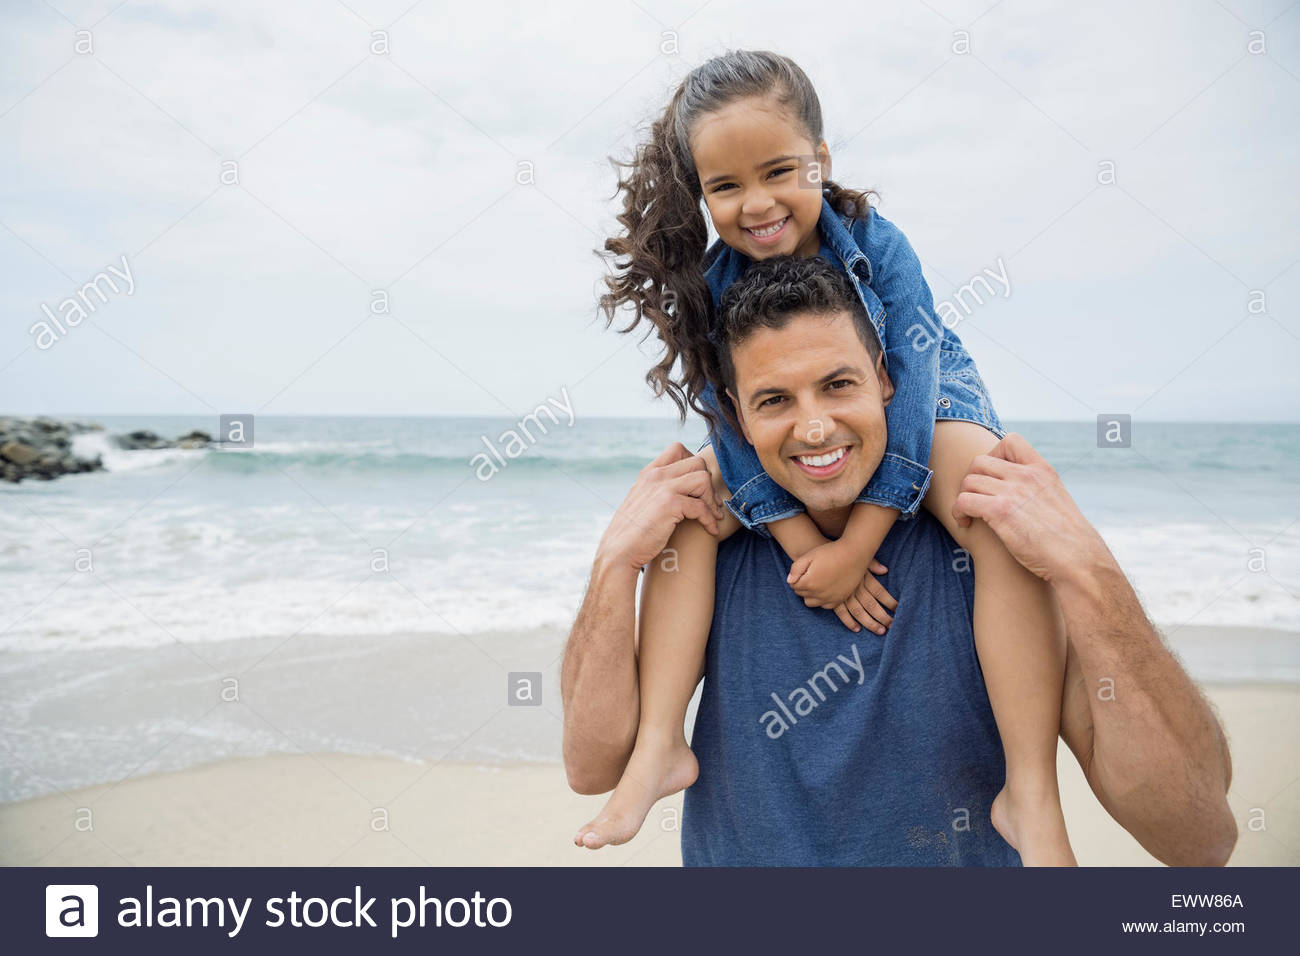 Portrait smiling father carrying daughter on shoulders beach - Stock Image